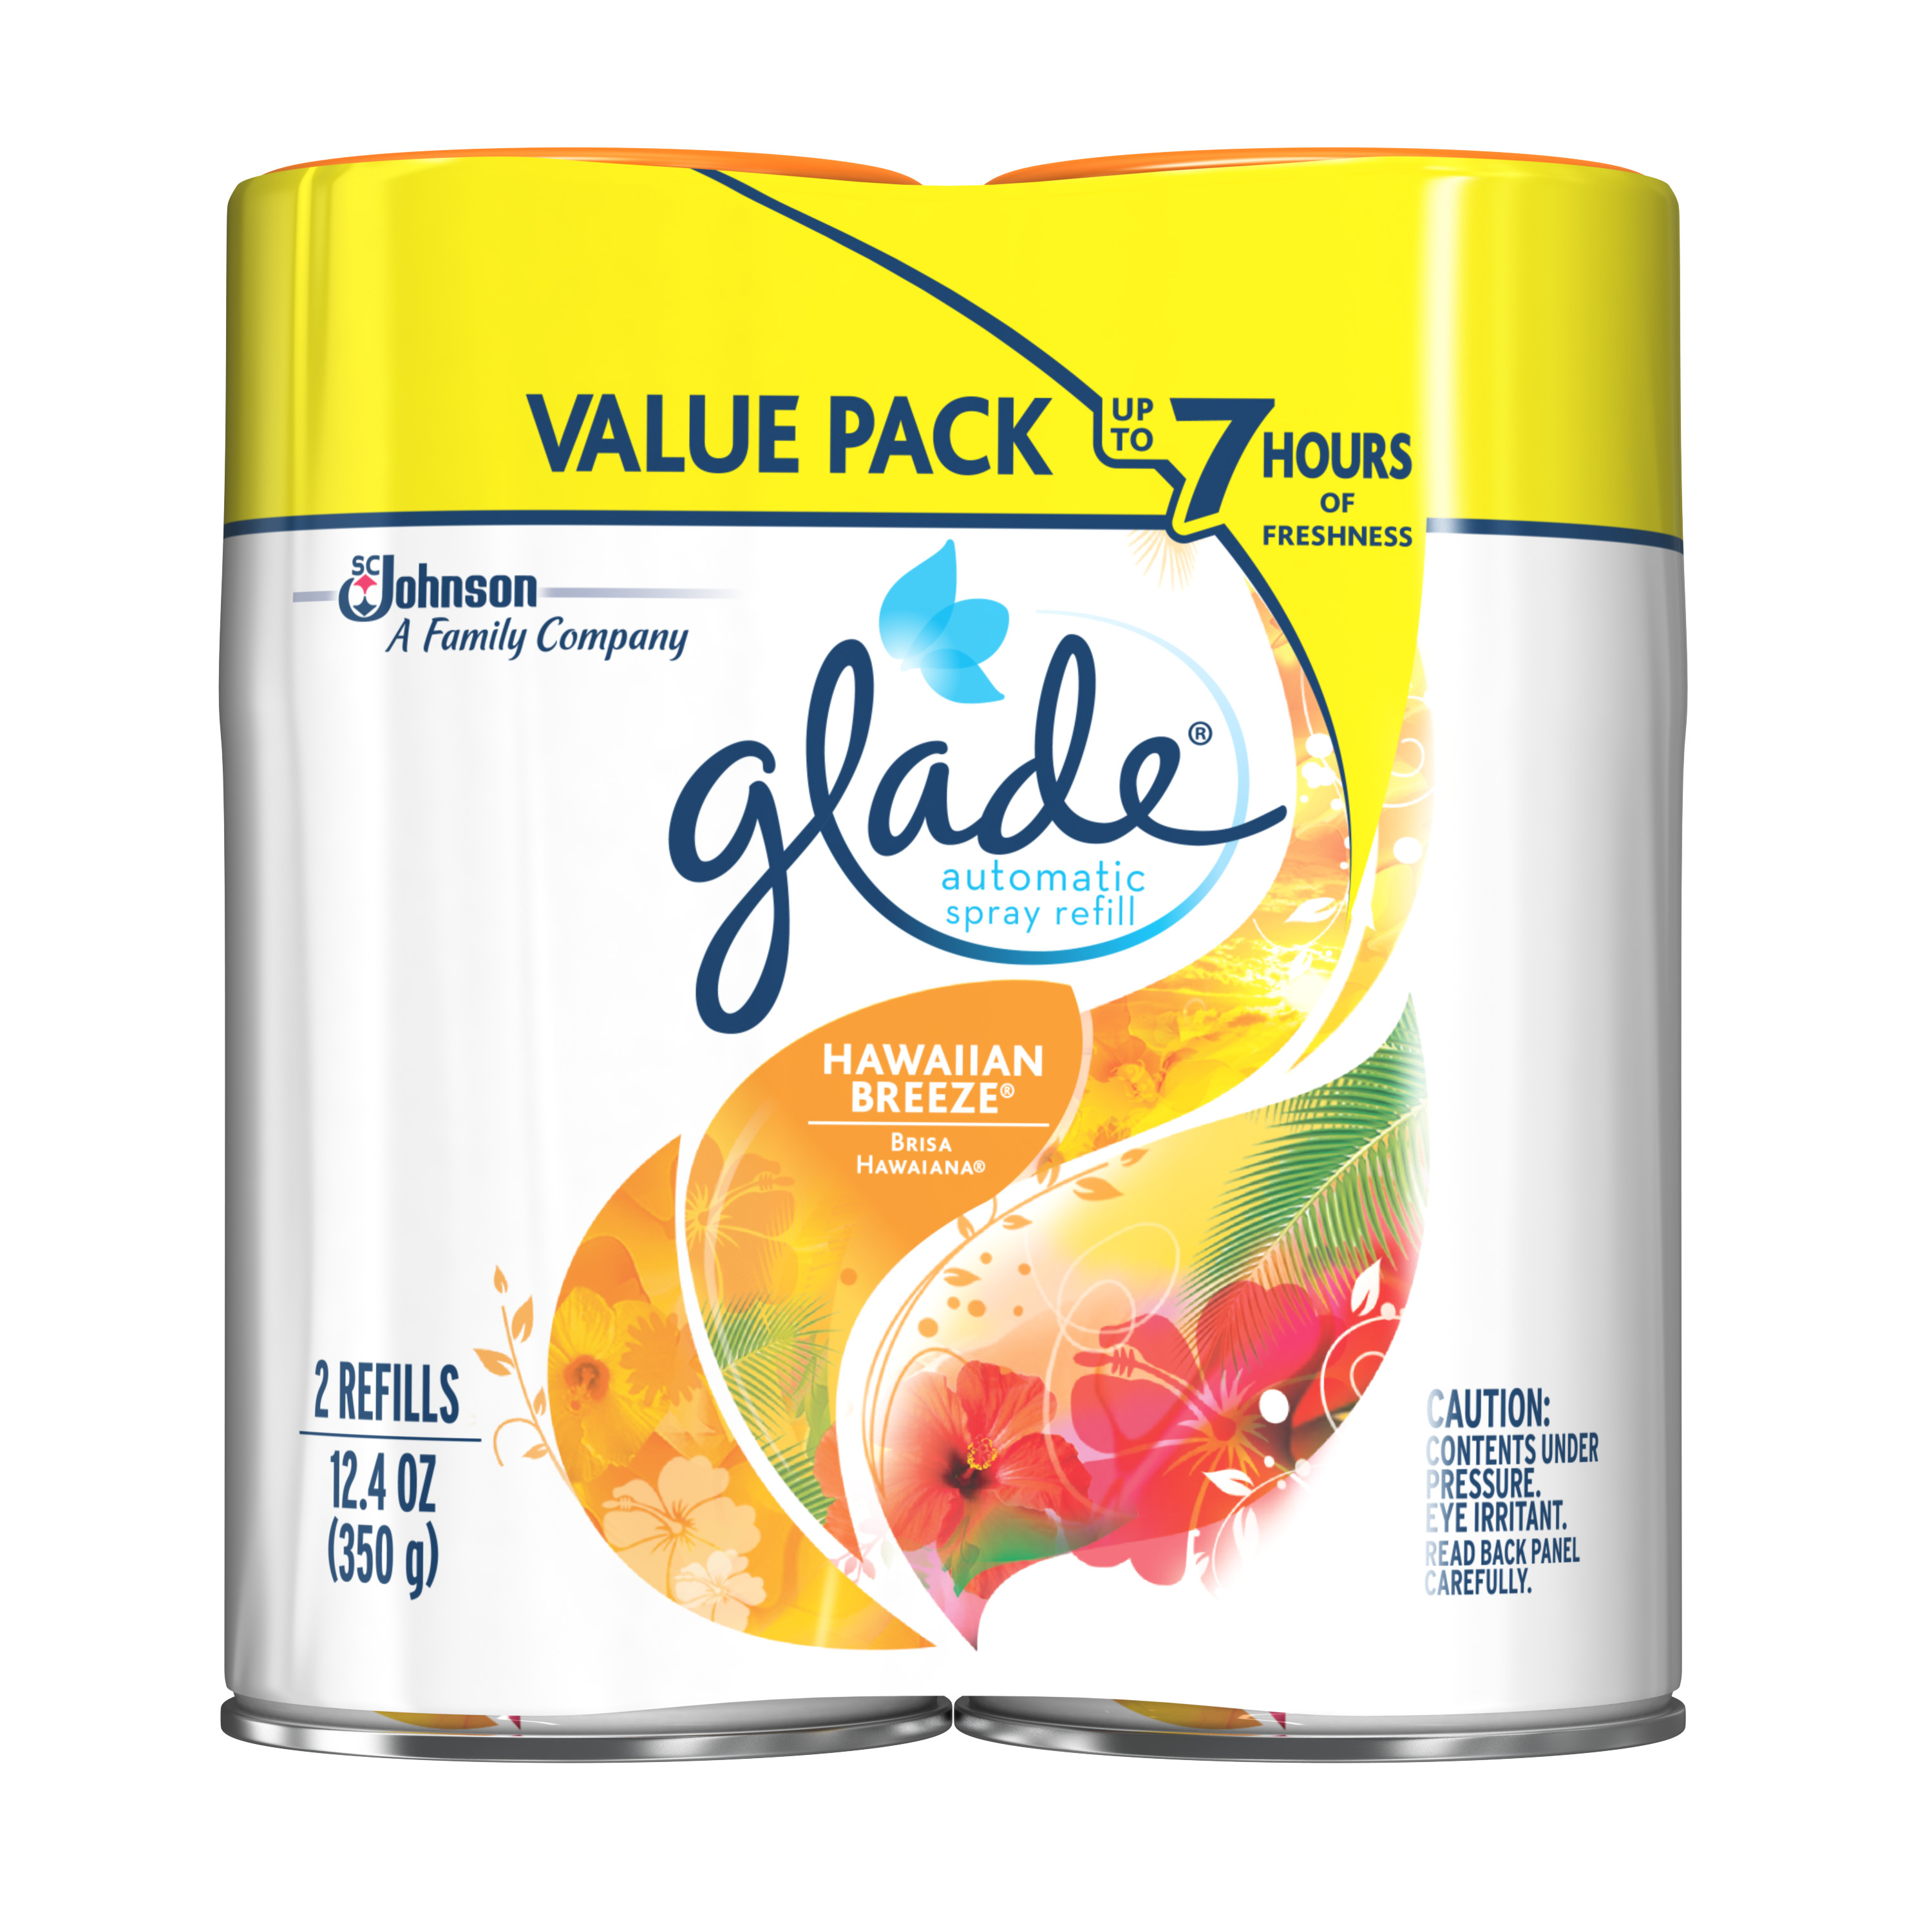 Glade Automatic Spray Air Freshener Refill, Hawaiian Breeze, 6.2 Ounces, 2 count